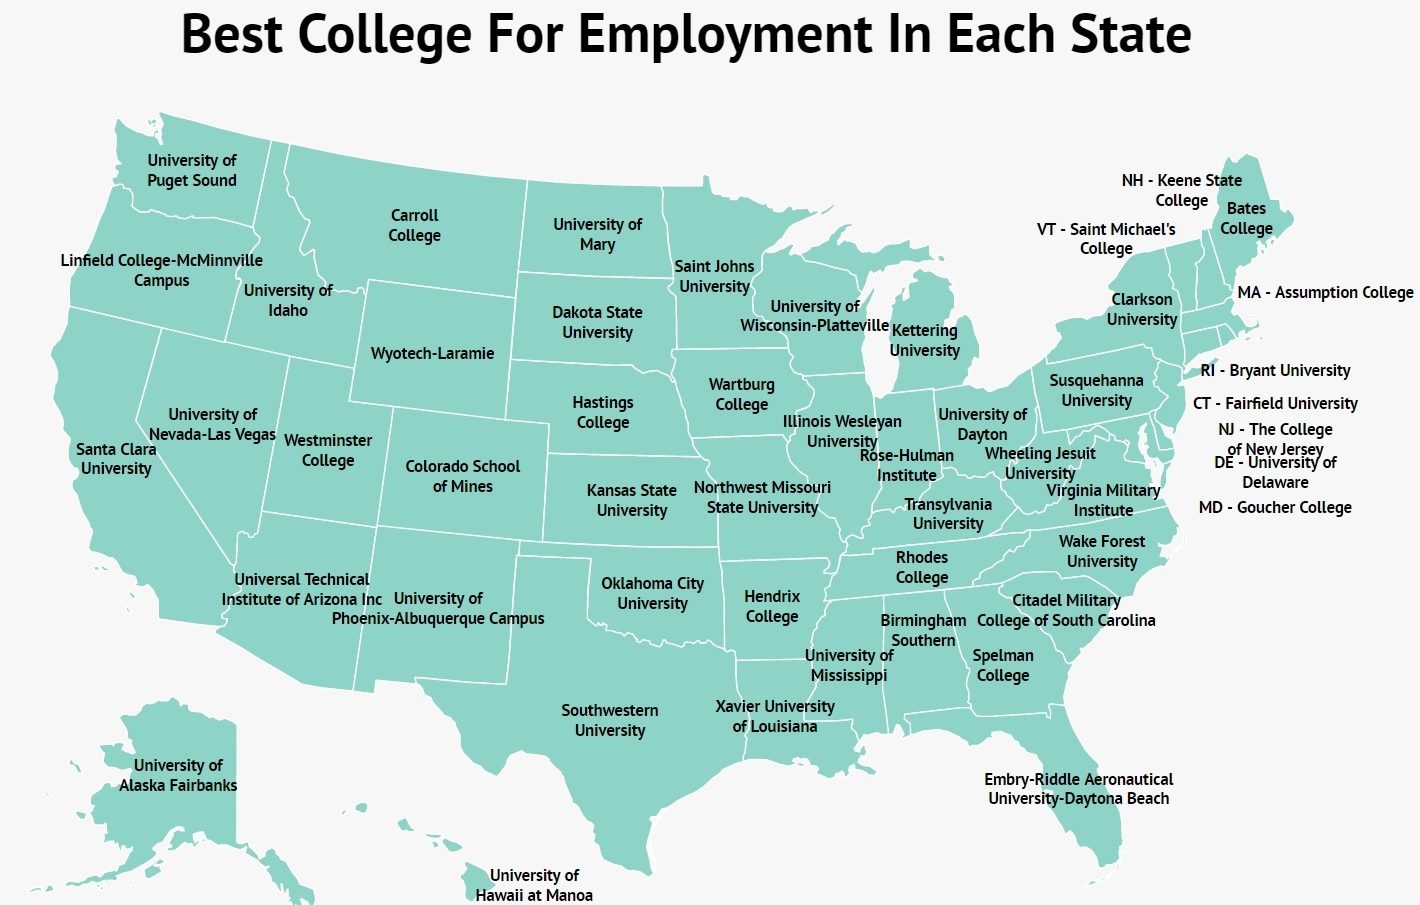 the best college in each state for getting a job zippia best college for employment in each state